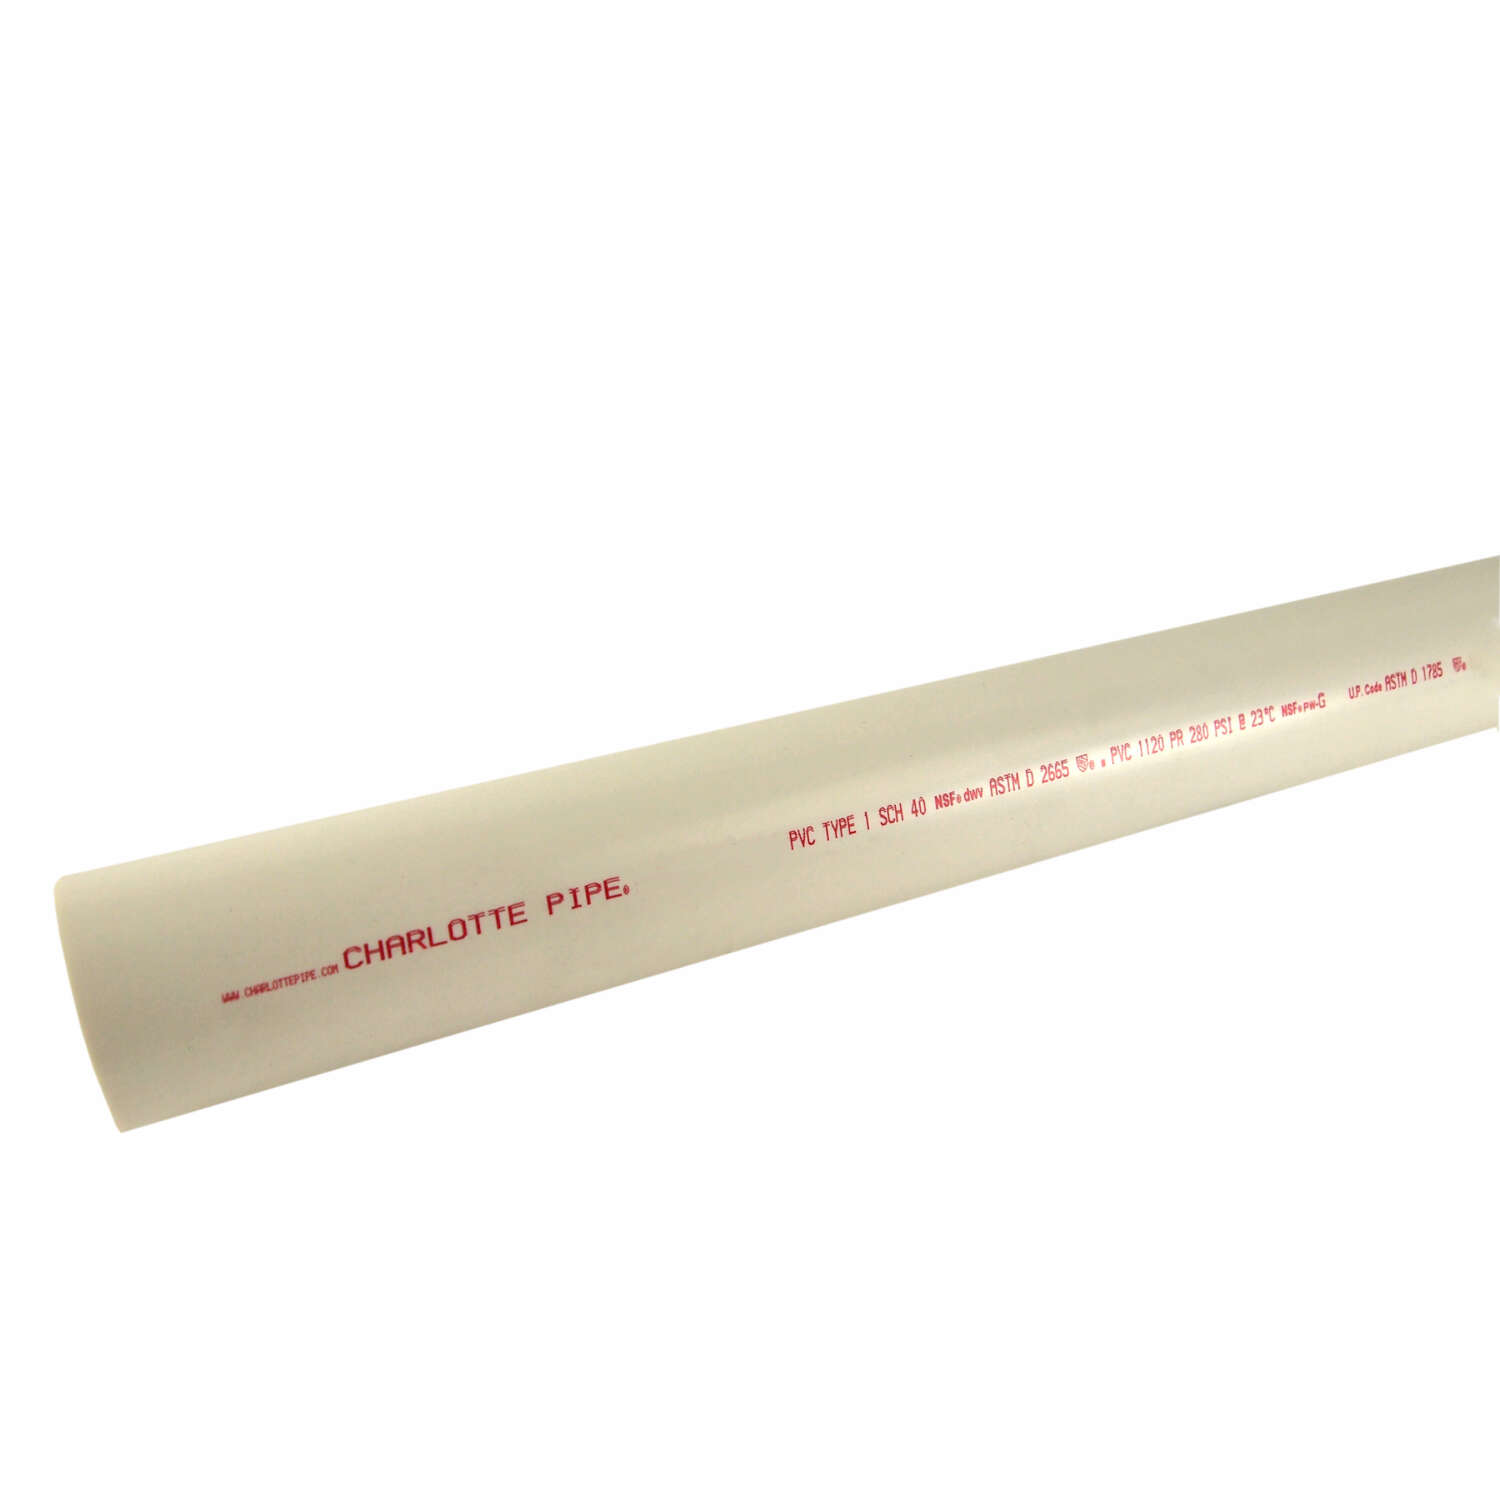 Charlotte Pipe  Schedule 40  PVC  Dual Rated Pipe  3 in. Dia. x 10  L Plain End  260 psi